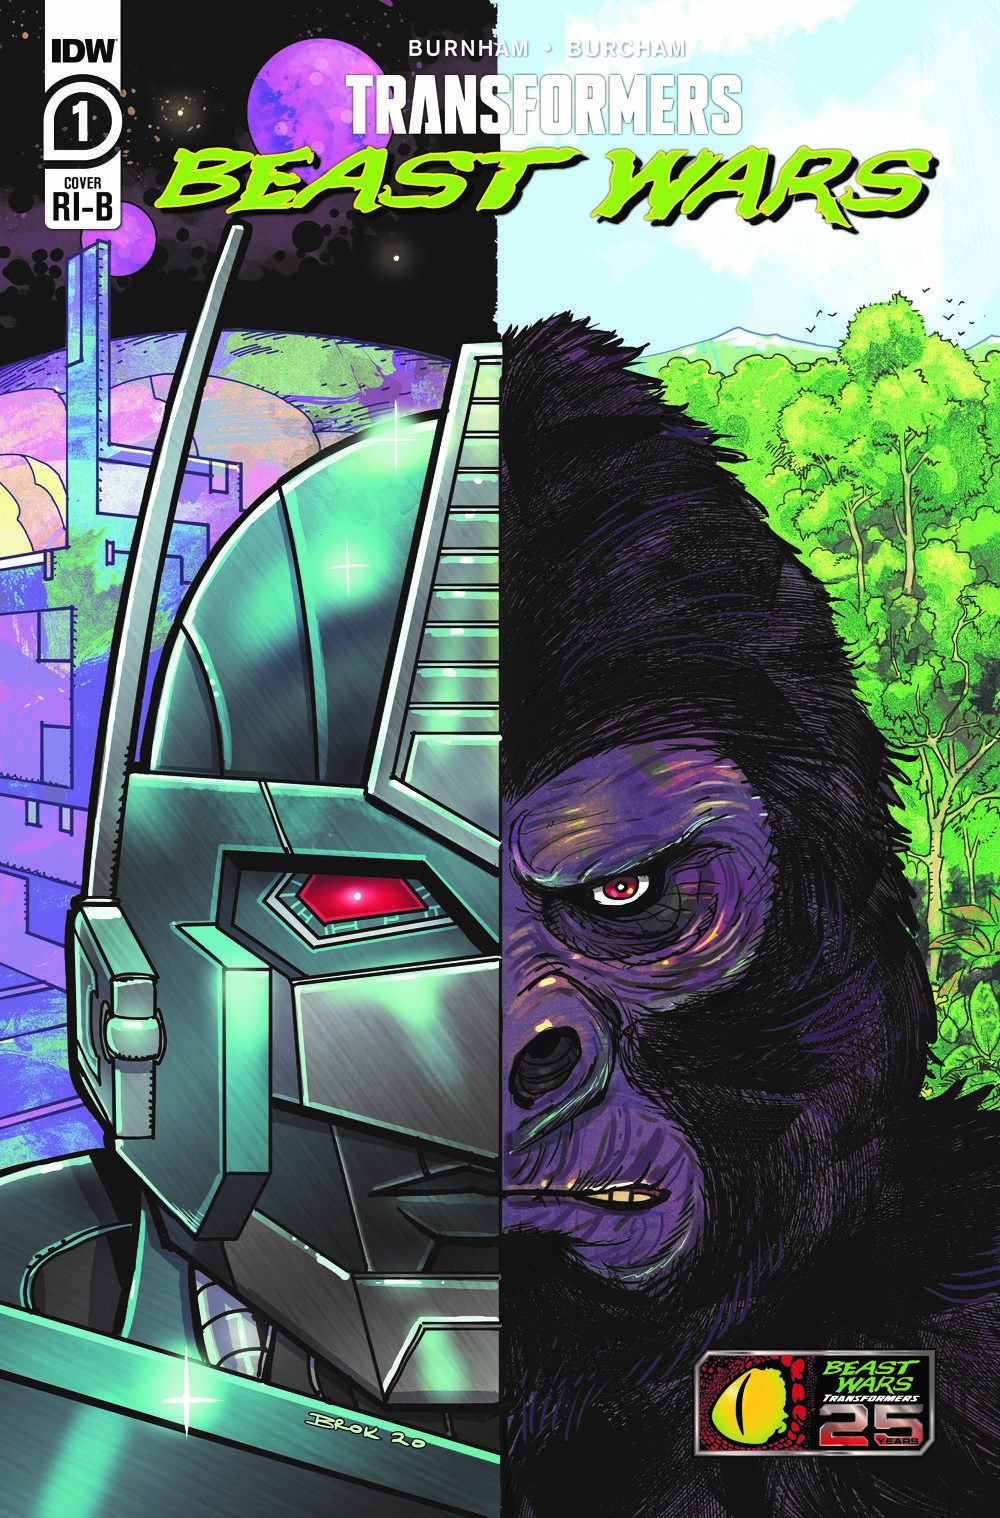 TFBW-Cover-RI-B ComicList: IDW Publishing New Releases for 02/03/2021